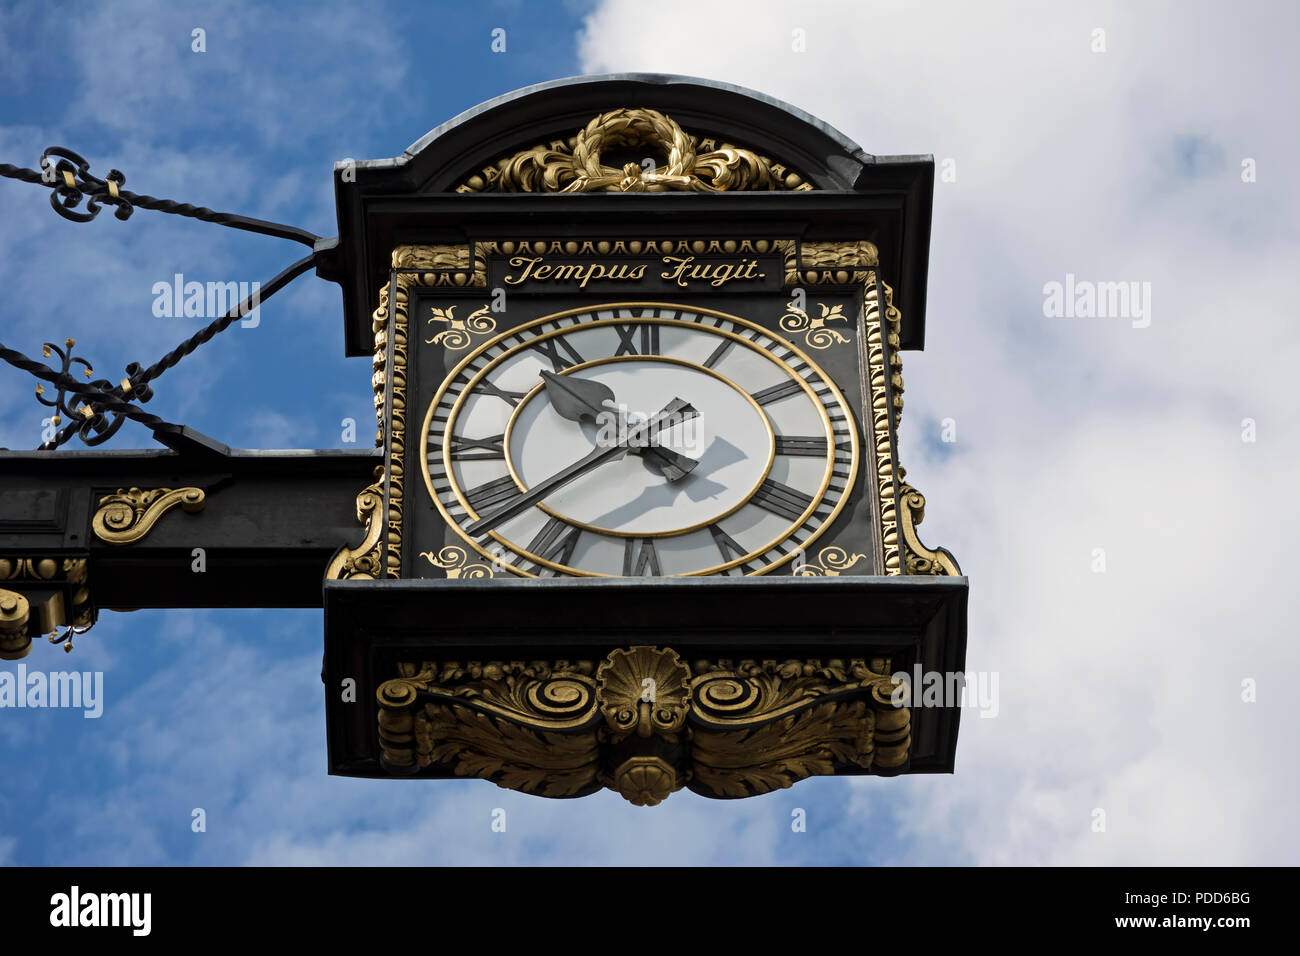 hanging clock outside the 1908 chelsea old town hall, chelsea, london, england, with latin inscription tempus fugit, or time flies - Stock Image